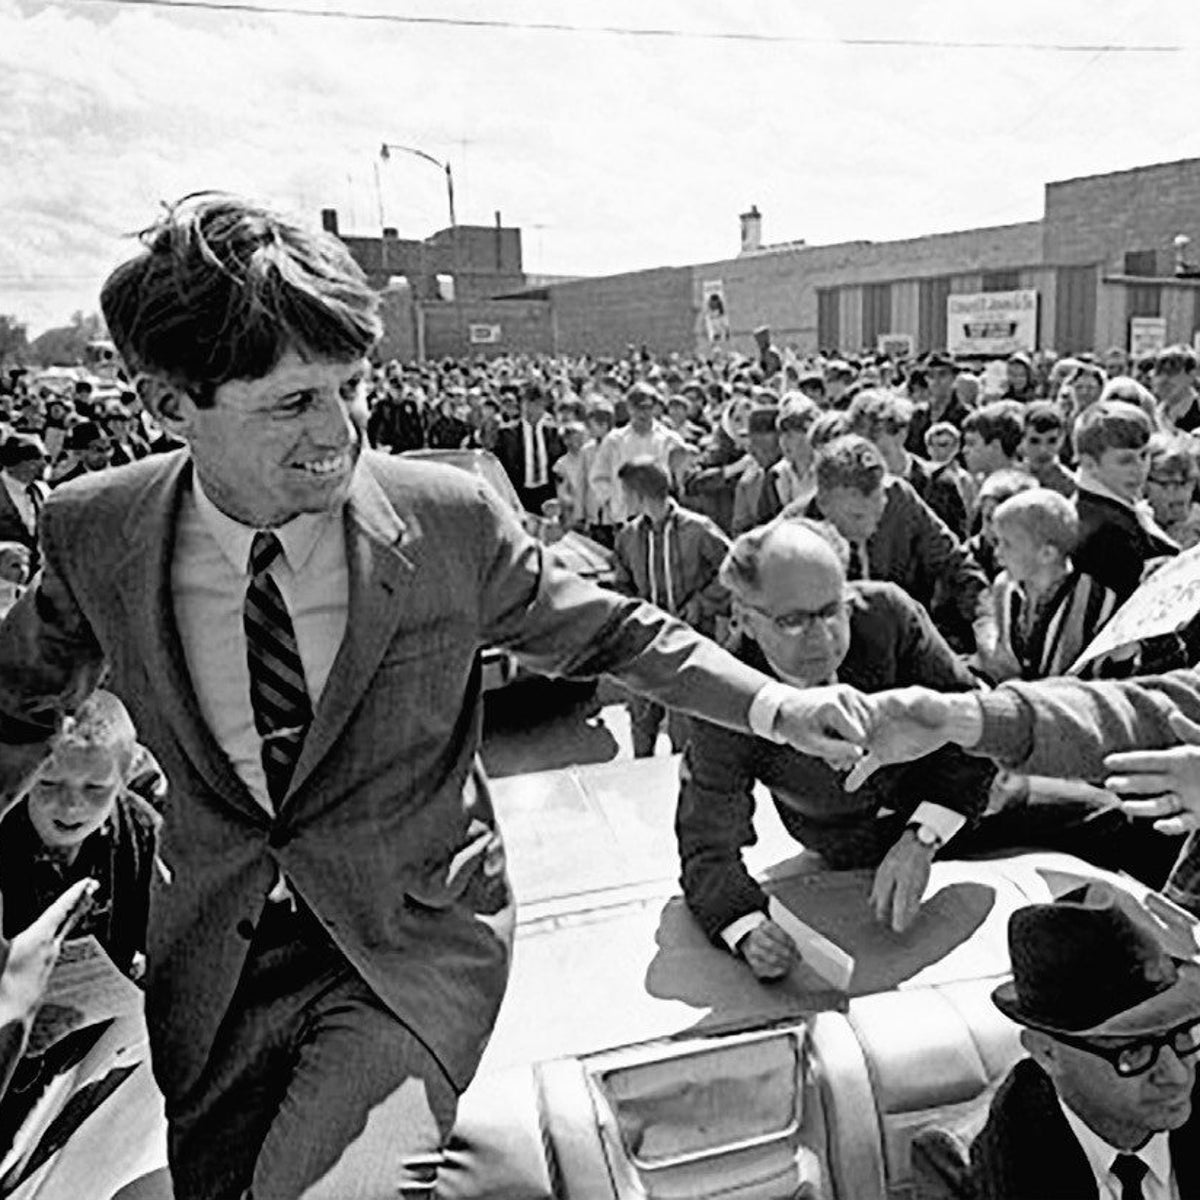 Robert F. Kennedy rides through Los Angeles in 1968 in his typical campaign pose: standing in an open-air car, smiling and reaching out to touch the endless hands that greet him.